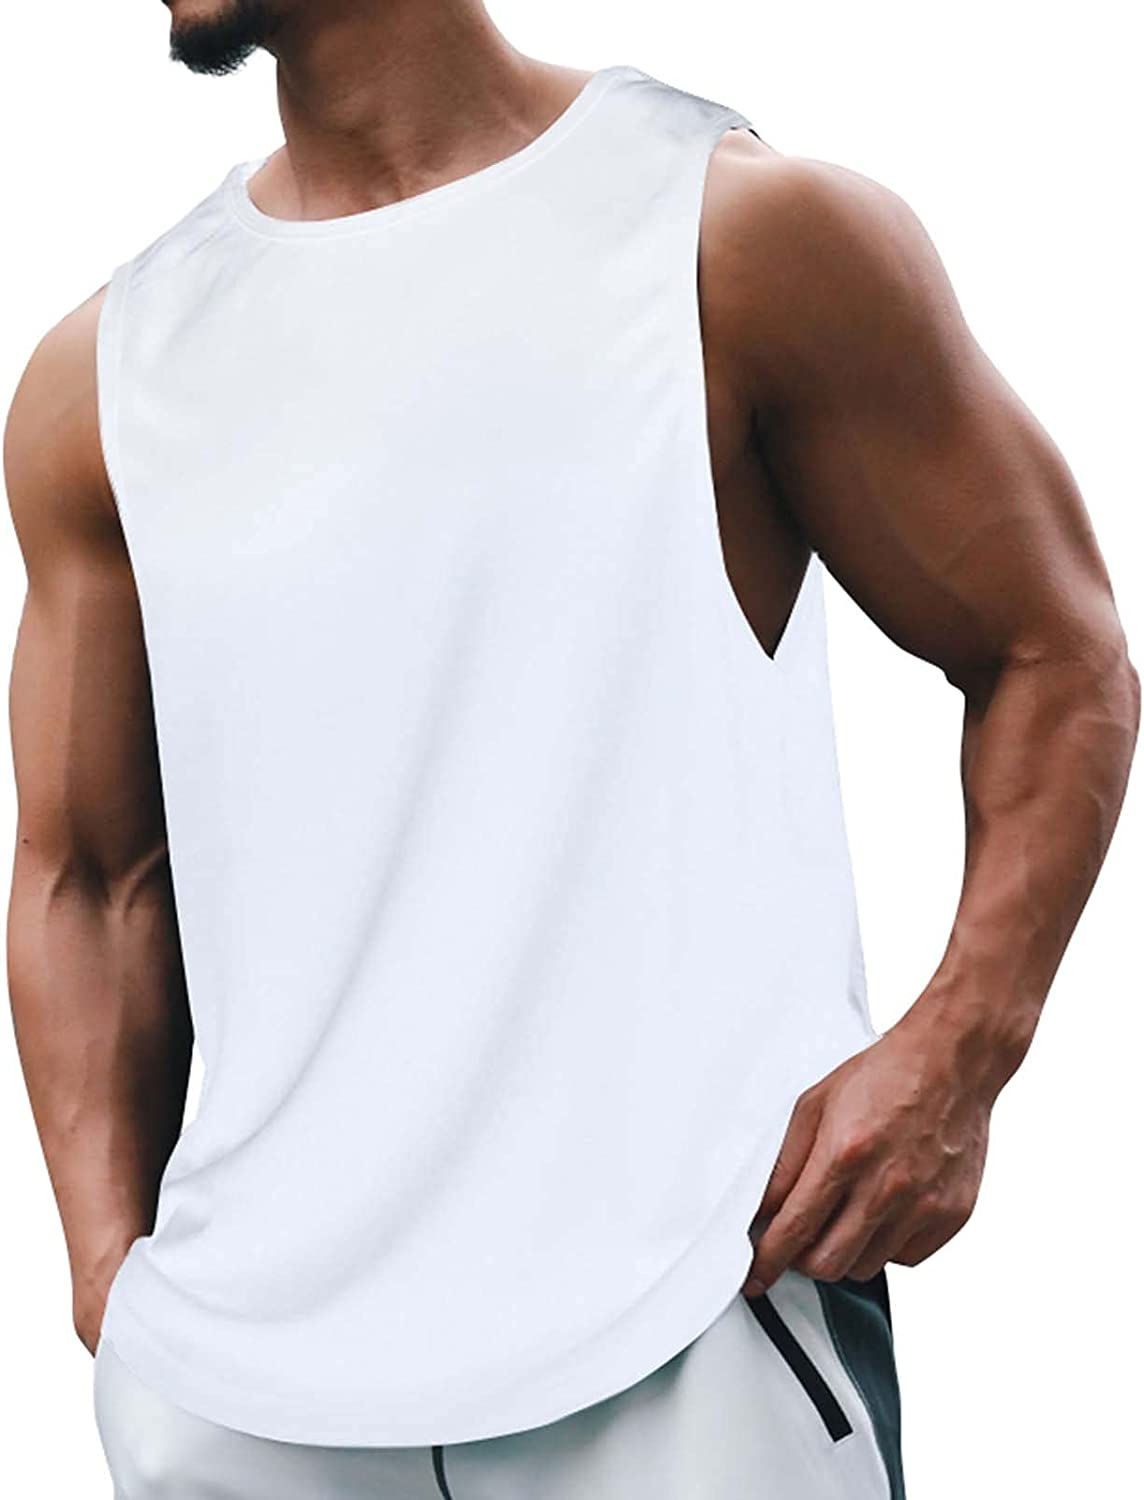 Mens Workout Tank Tops Muscle Sleeveless Hoodies Gym Bodybuilding Cut Off T-Shirts